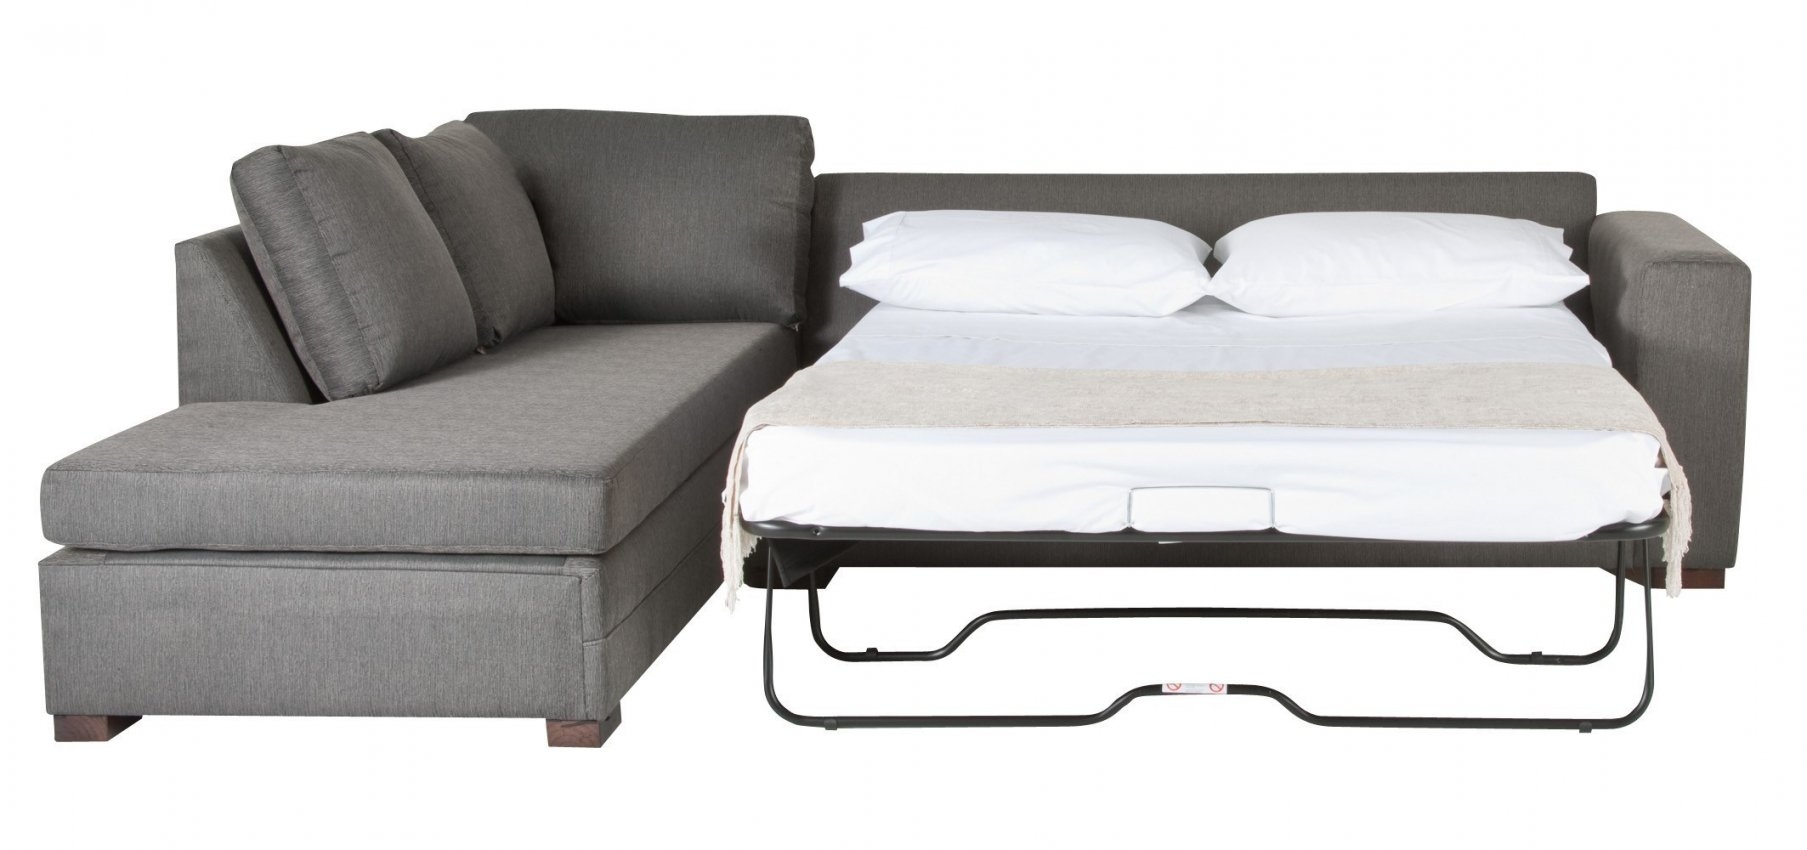 Pull Out Sofa Bed With Sleeper Sectional Sofa For Small For Queen Regarding Sectional Sofas With Queen Size Sleeper (Image 2 of 10)